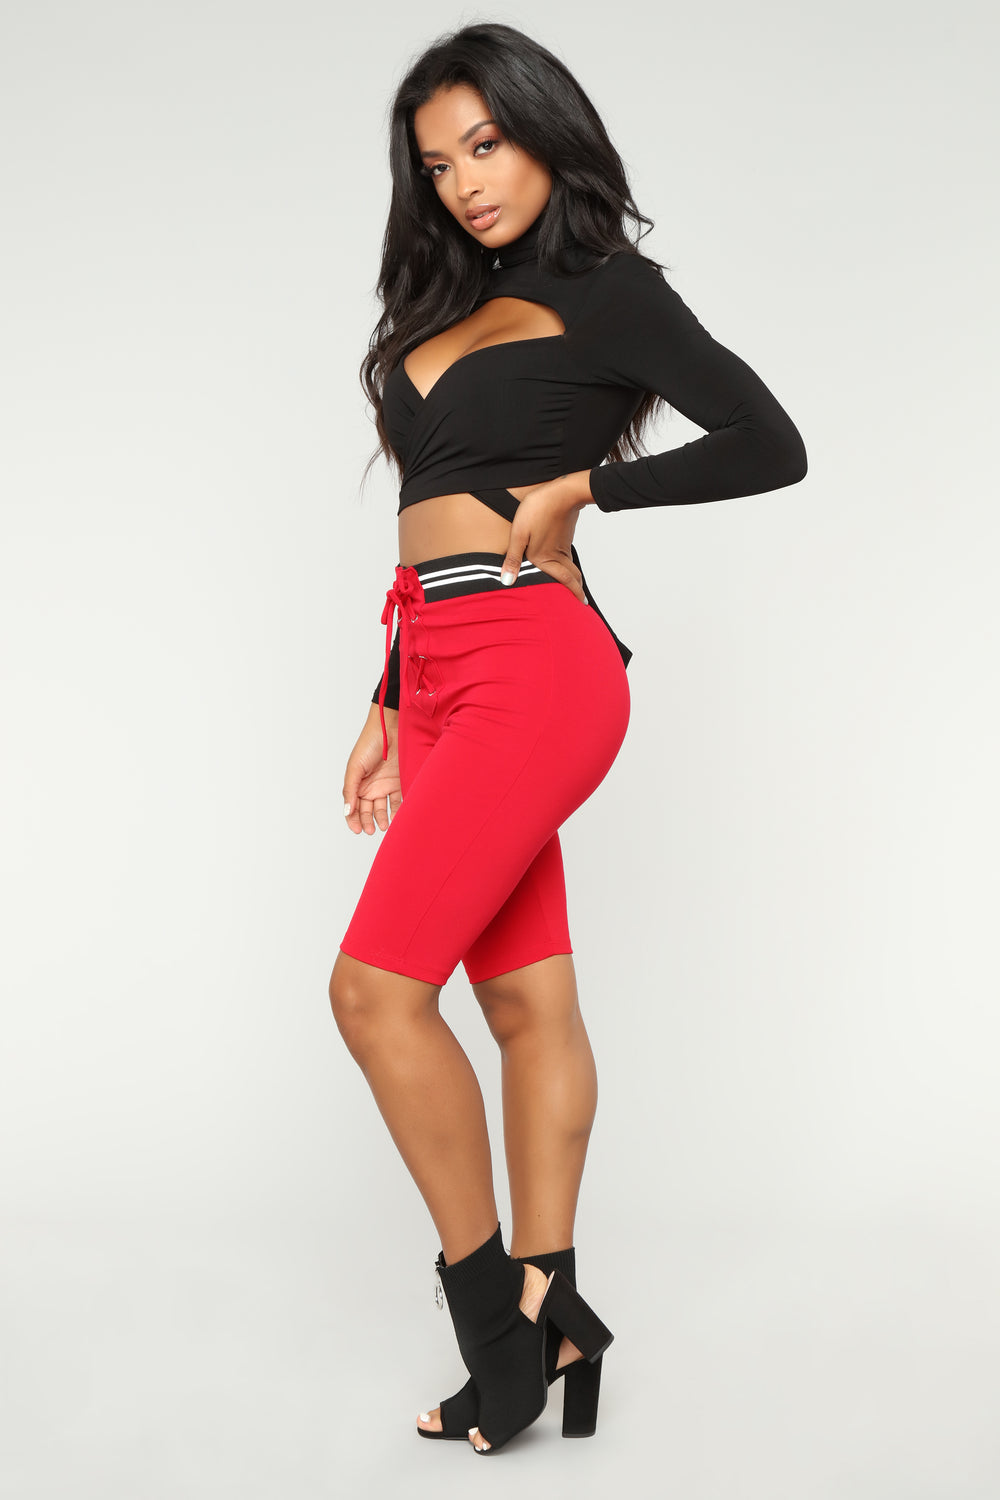 Michaela Biker Shorts - Red